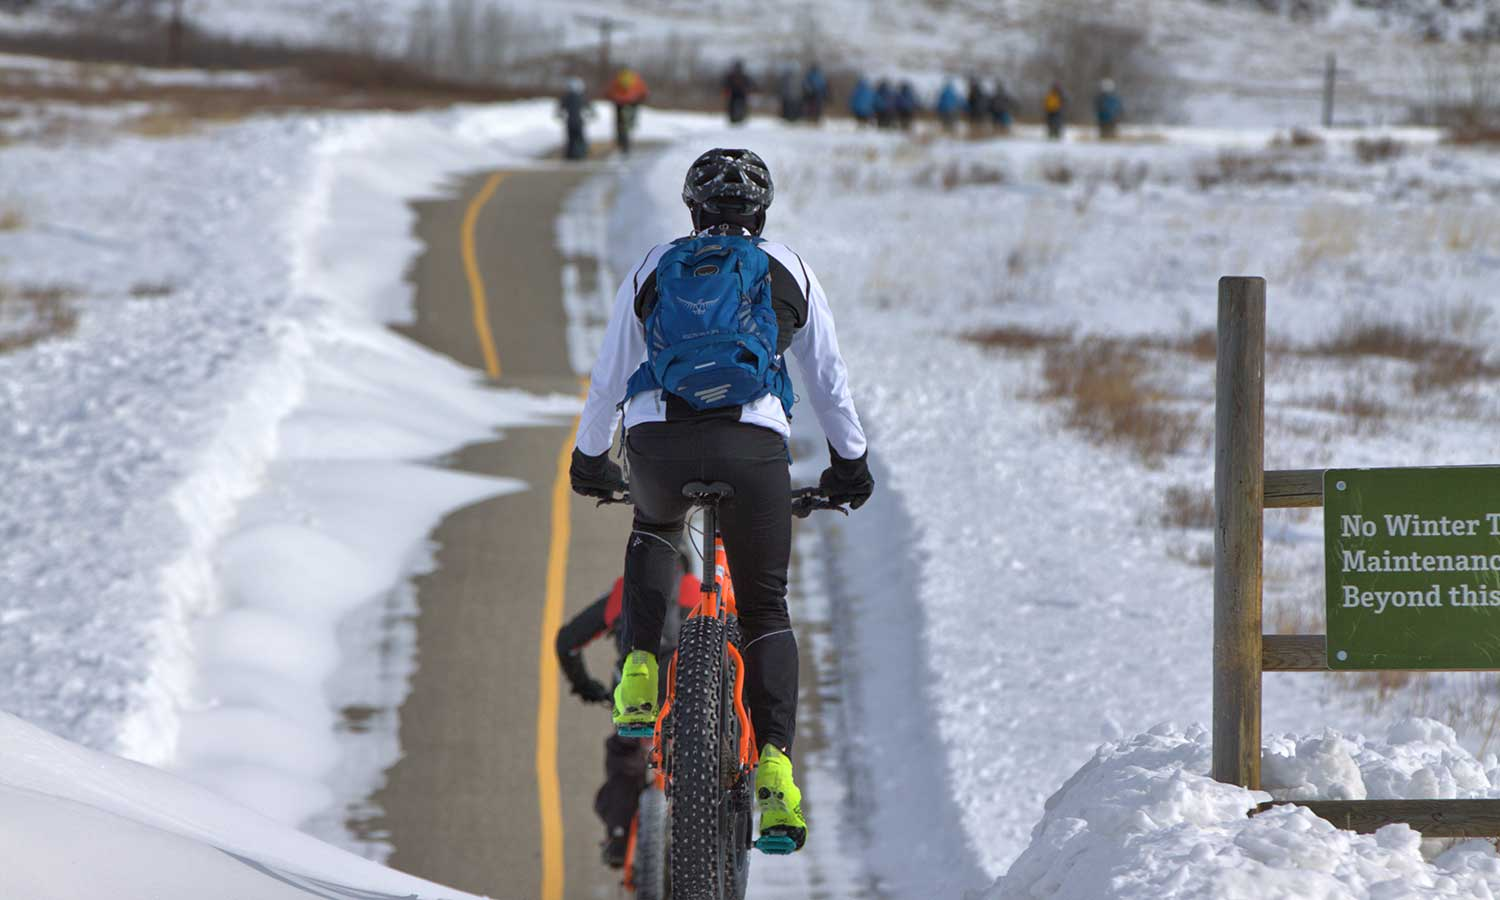 Ultimate Fat Biking Tour - Feel the Adventure